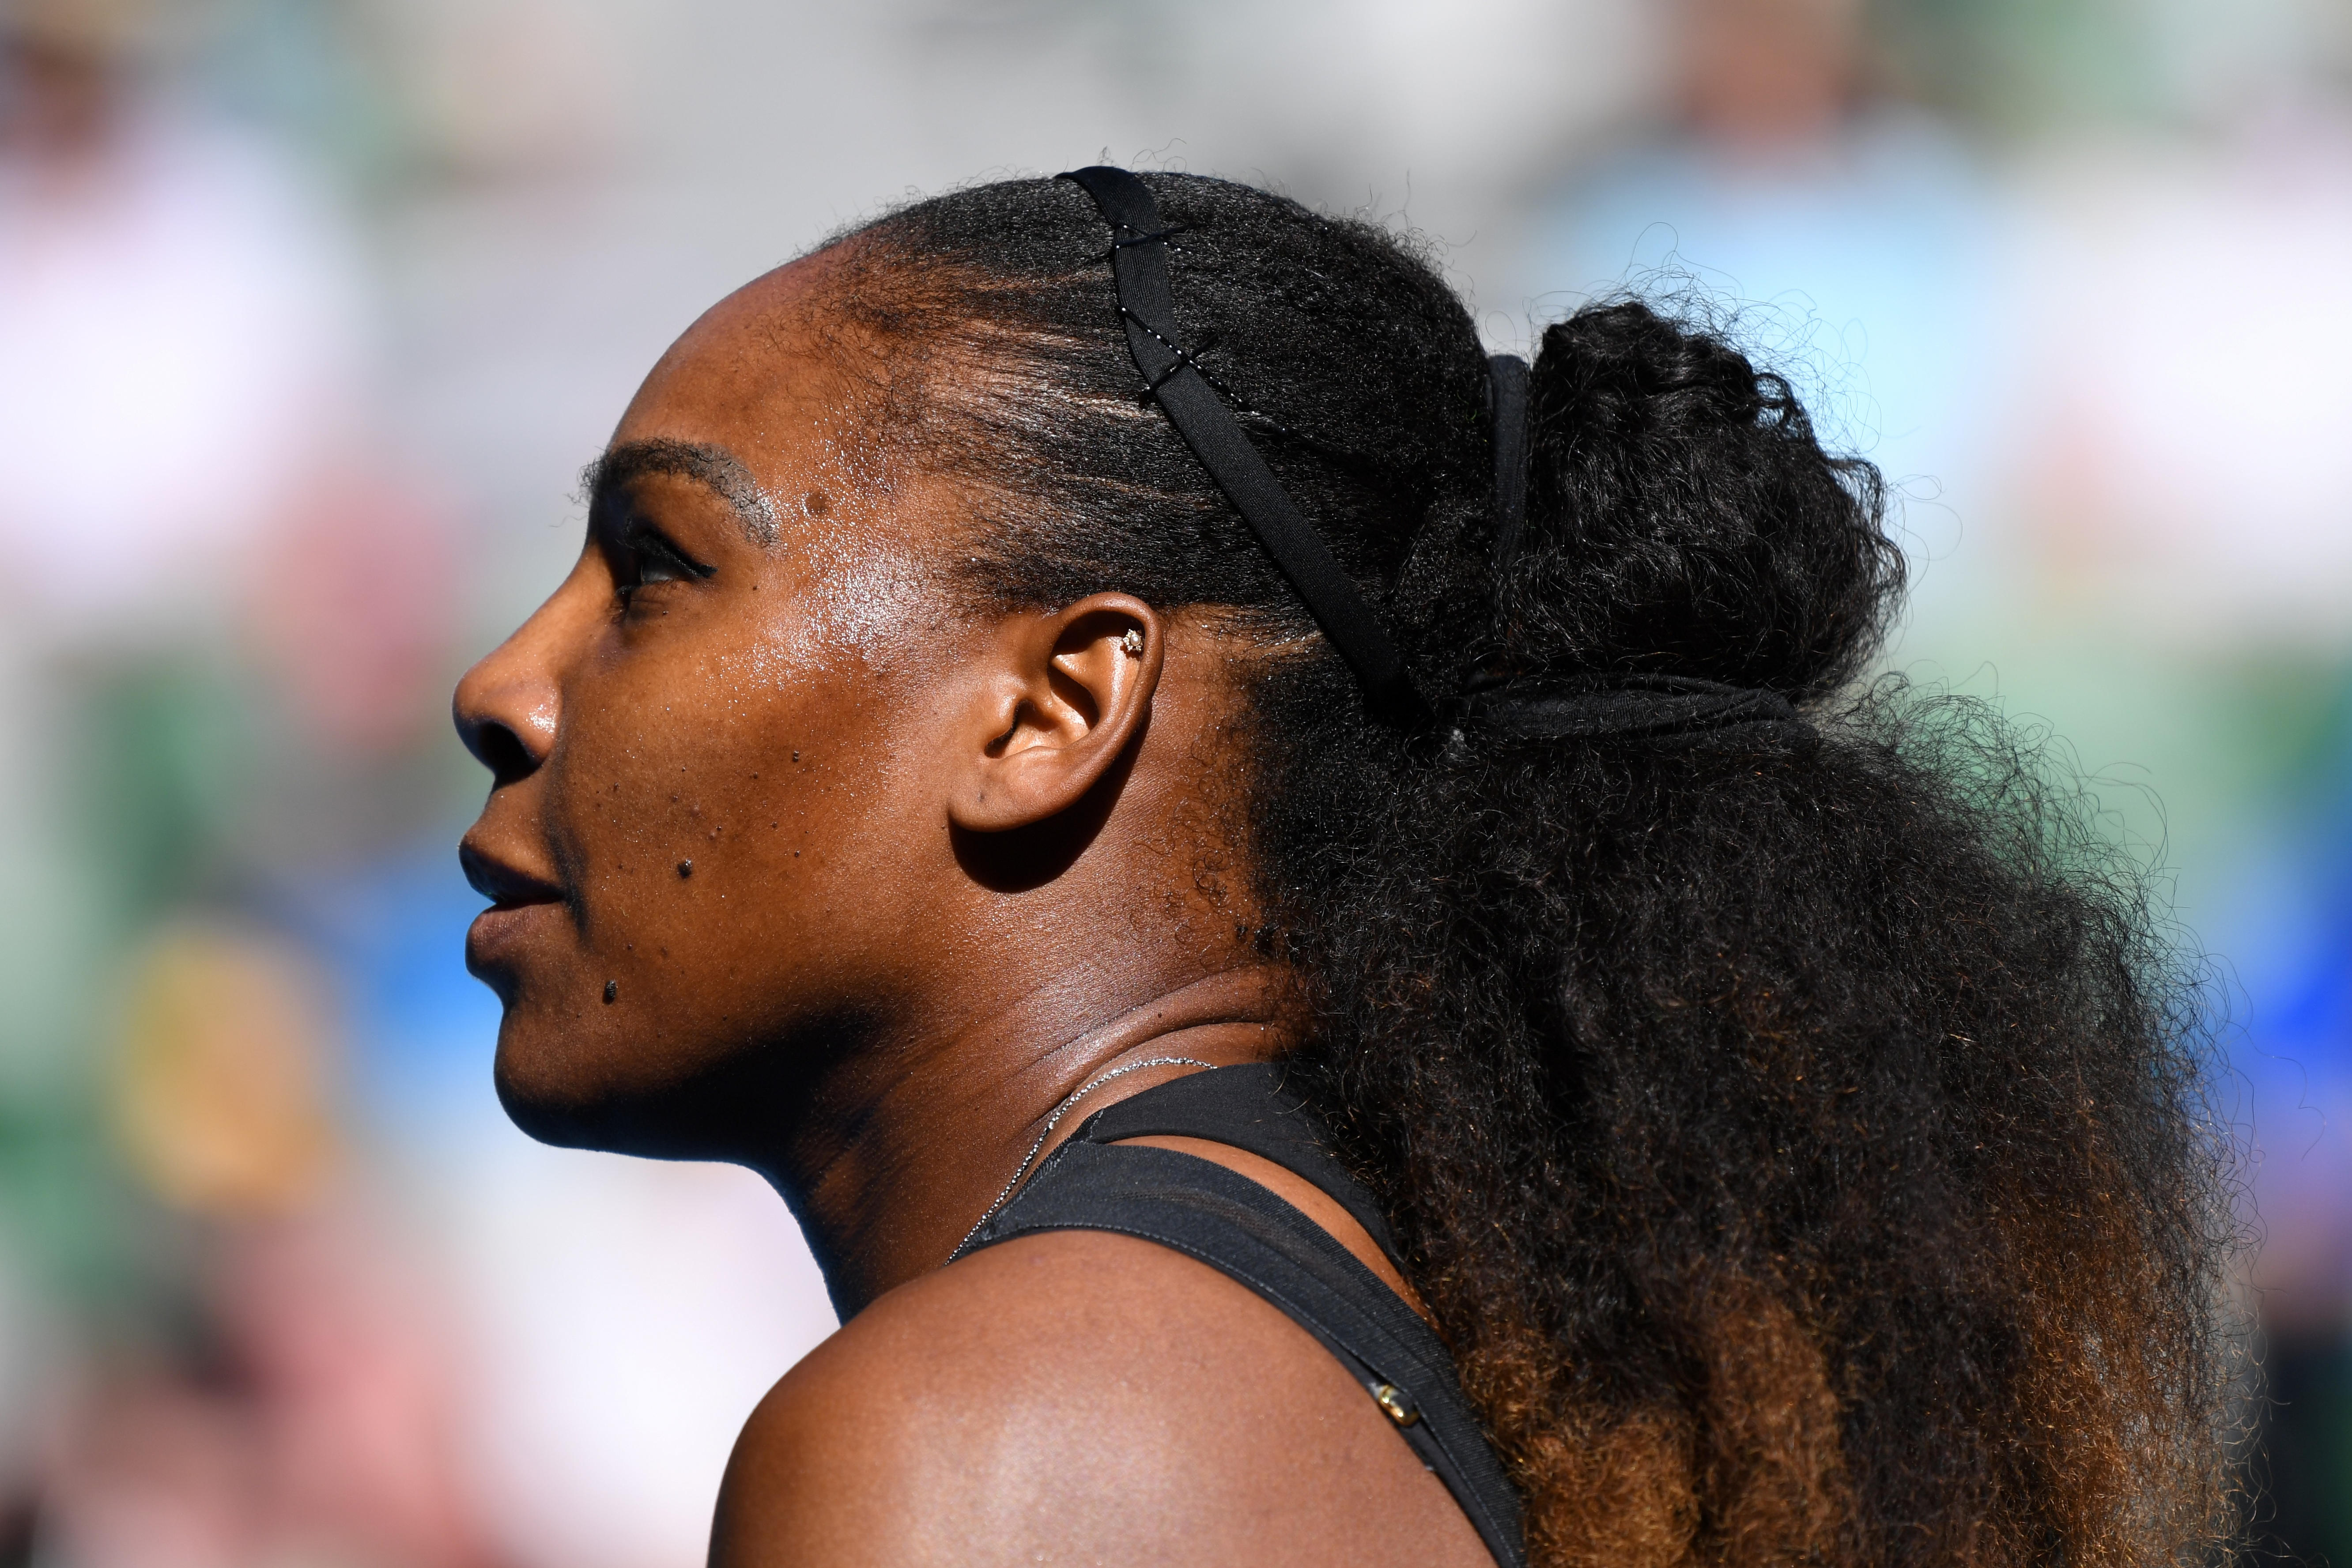 Serena Williams of the US looks on while playing against Croatia's Mirjana Lucic-Baroni during their women's singles semi-final match on day 11 of the Australian Open tennis tournament in Melbourne on January 26, 2017. / AFP PHOTO / GREG WOOD /